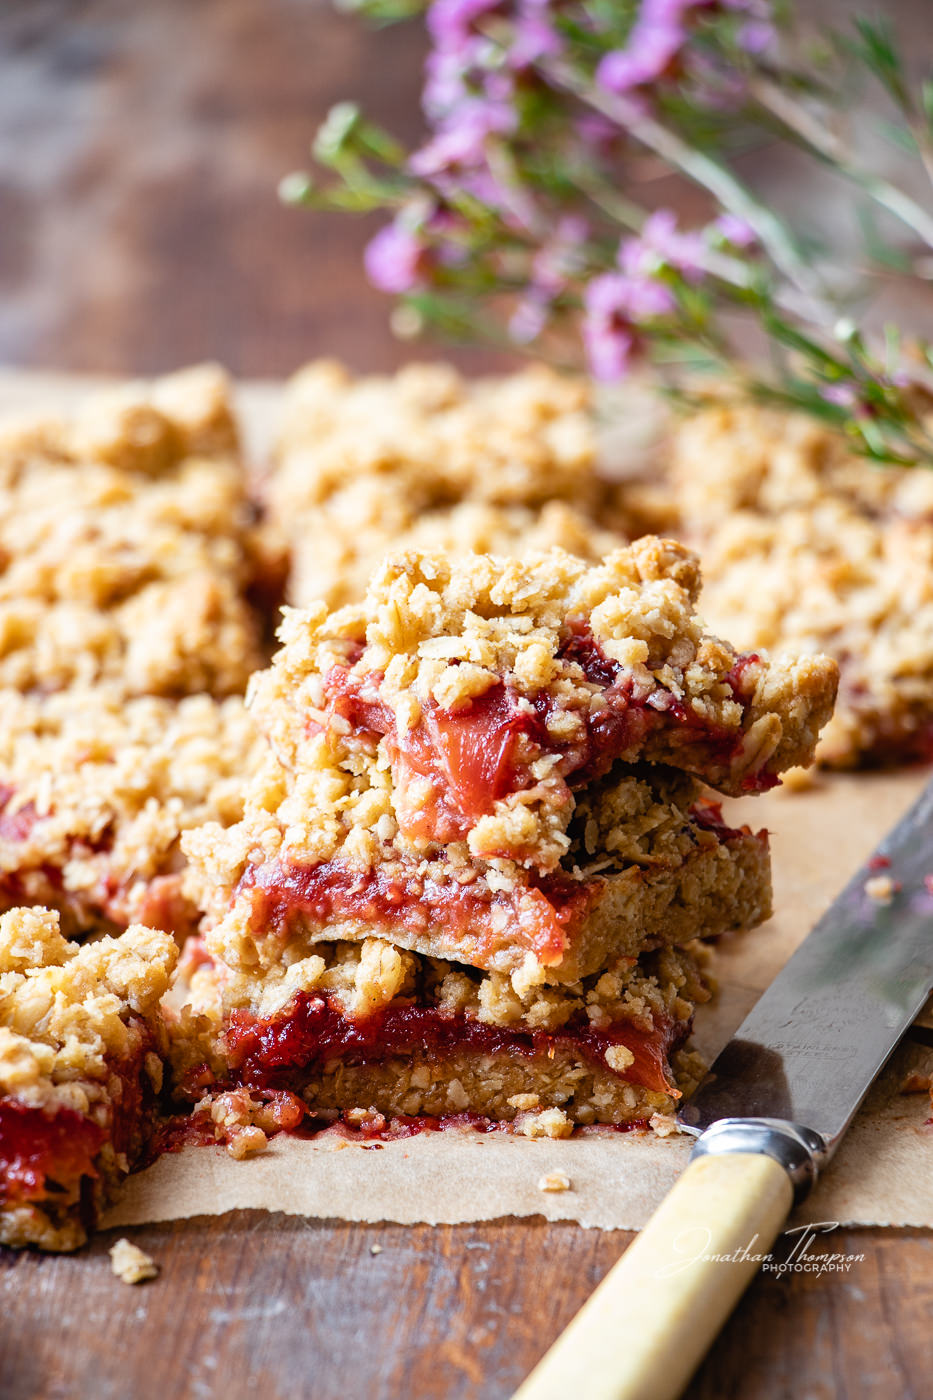 Fruit crumble bar with small pink flowers in the background